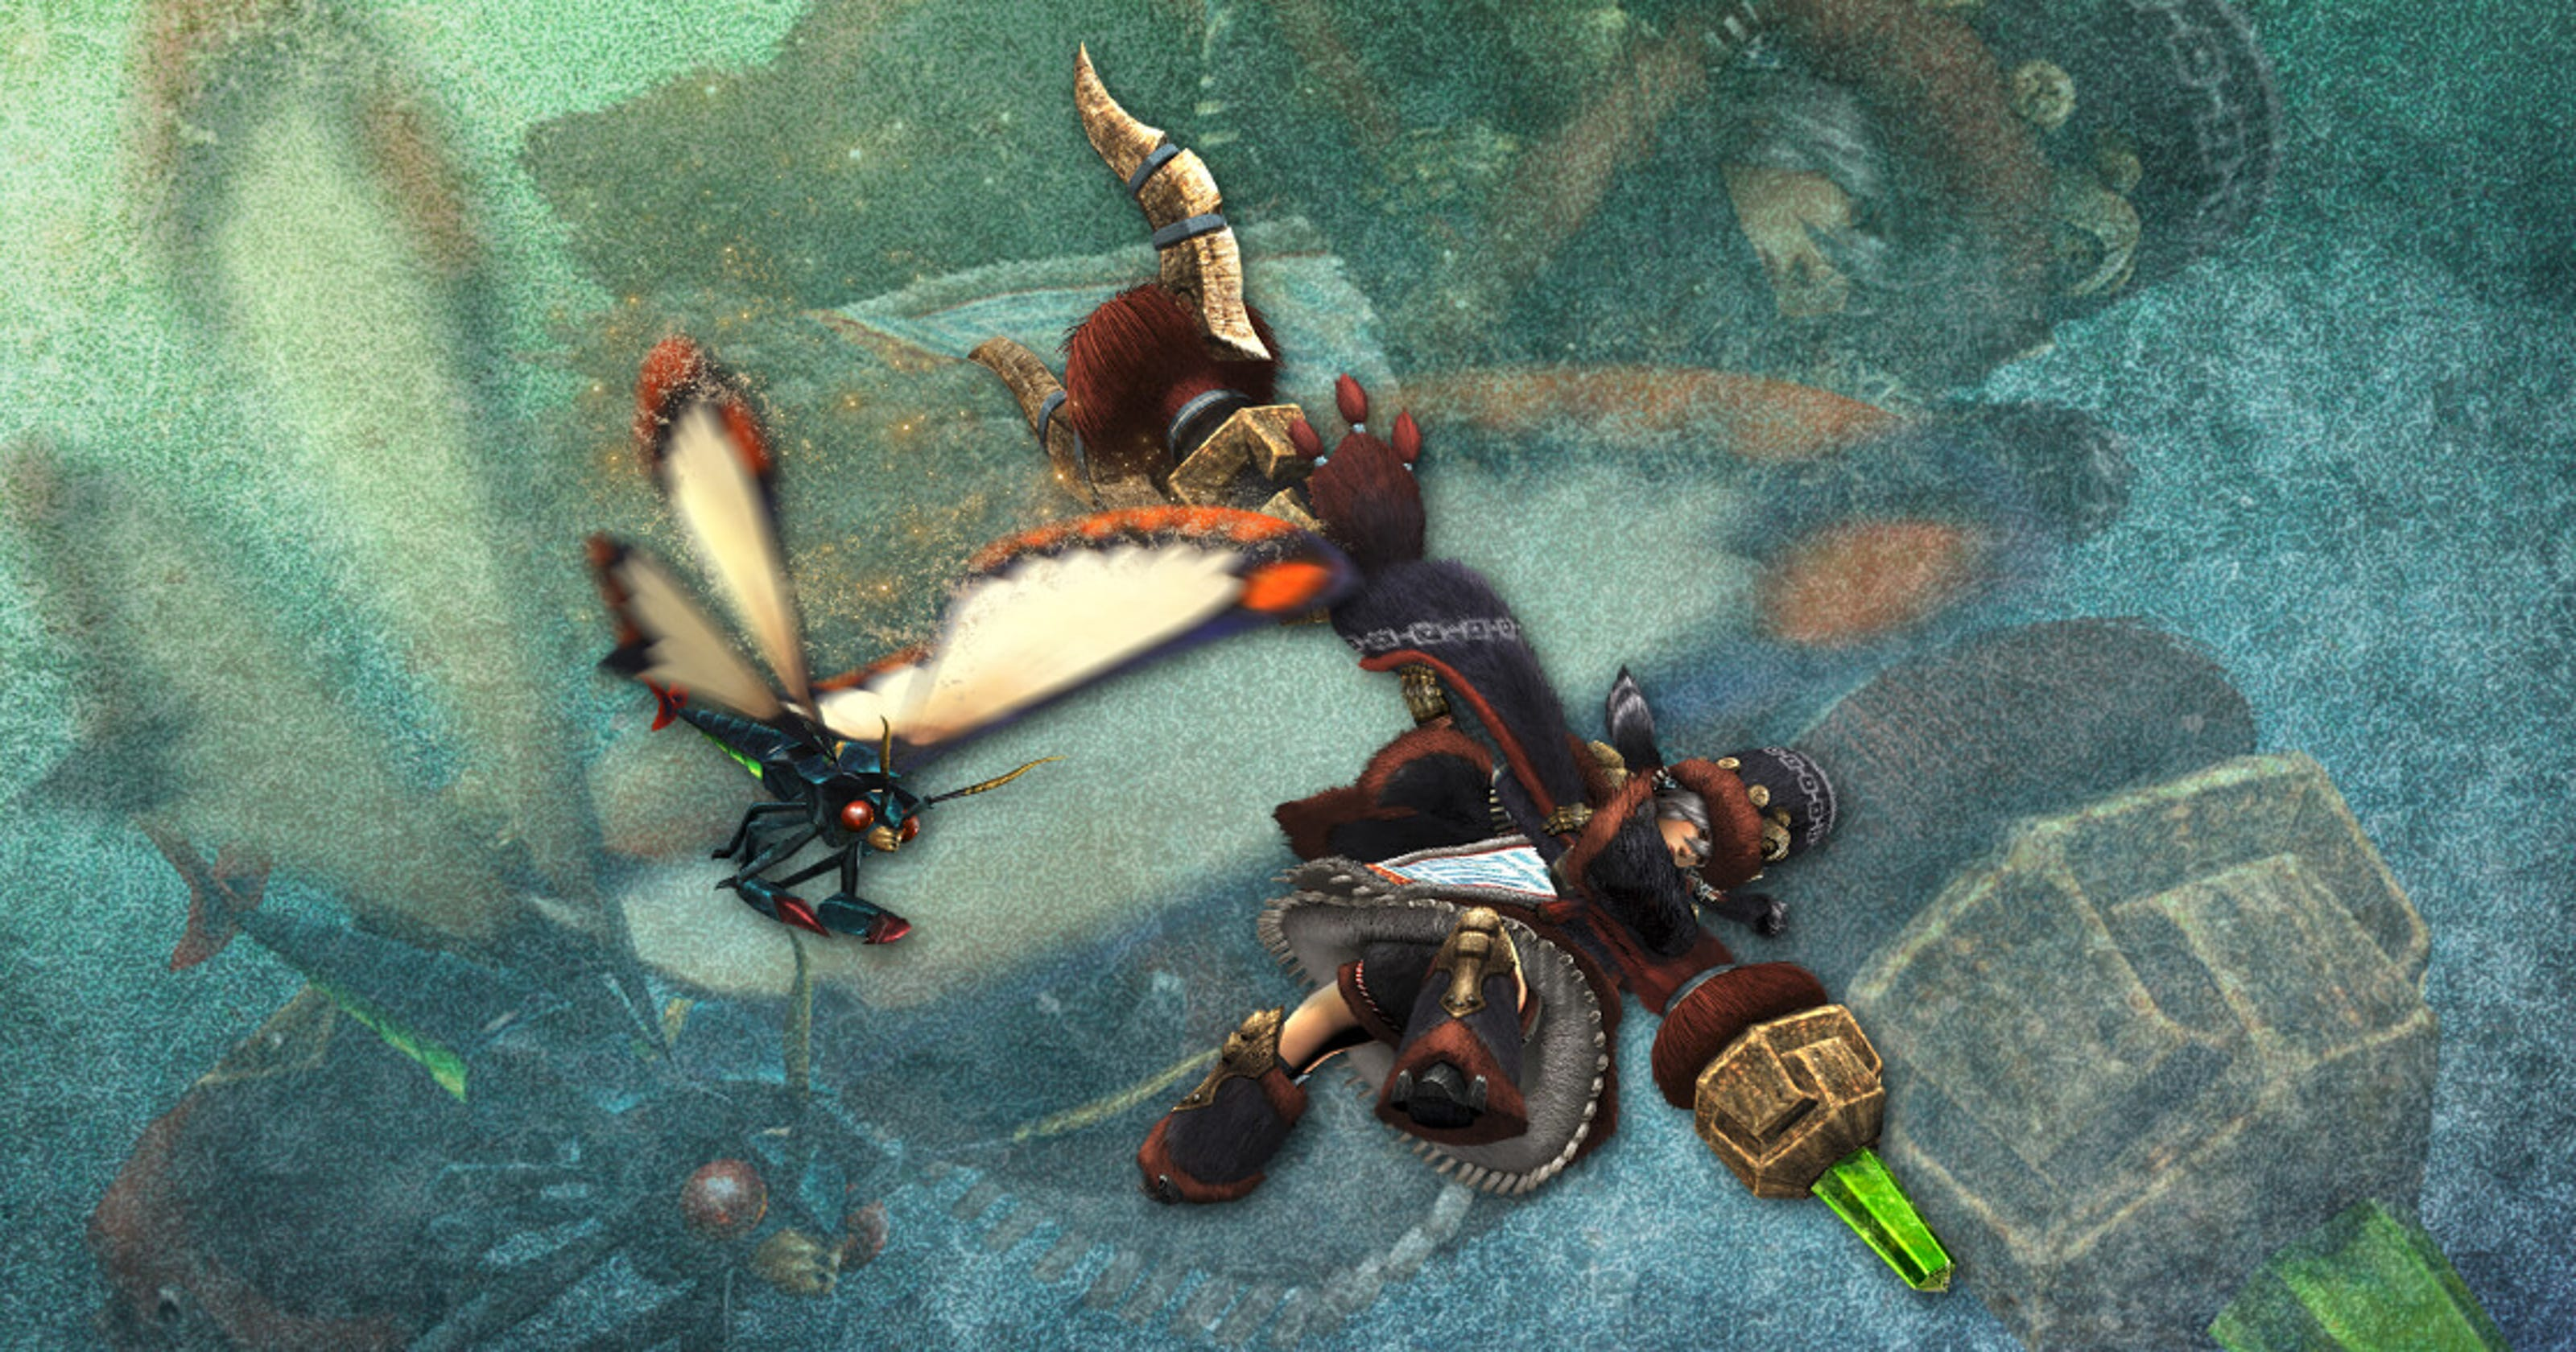 Monster Hunter Generations Kinsect Leveling Guide | Technobubble